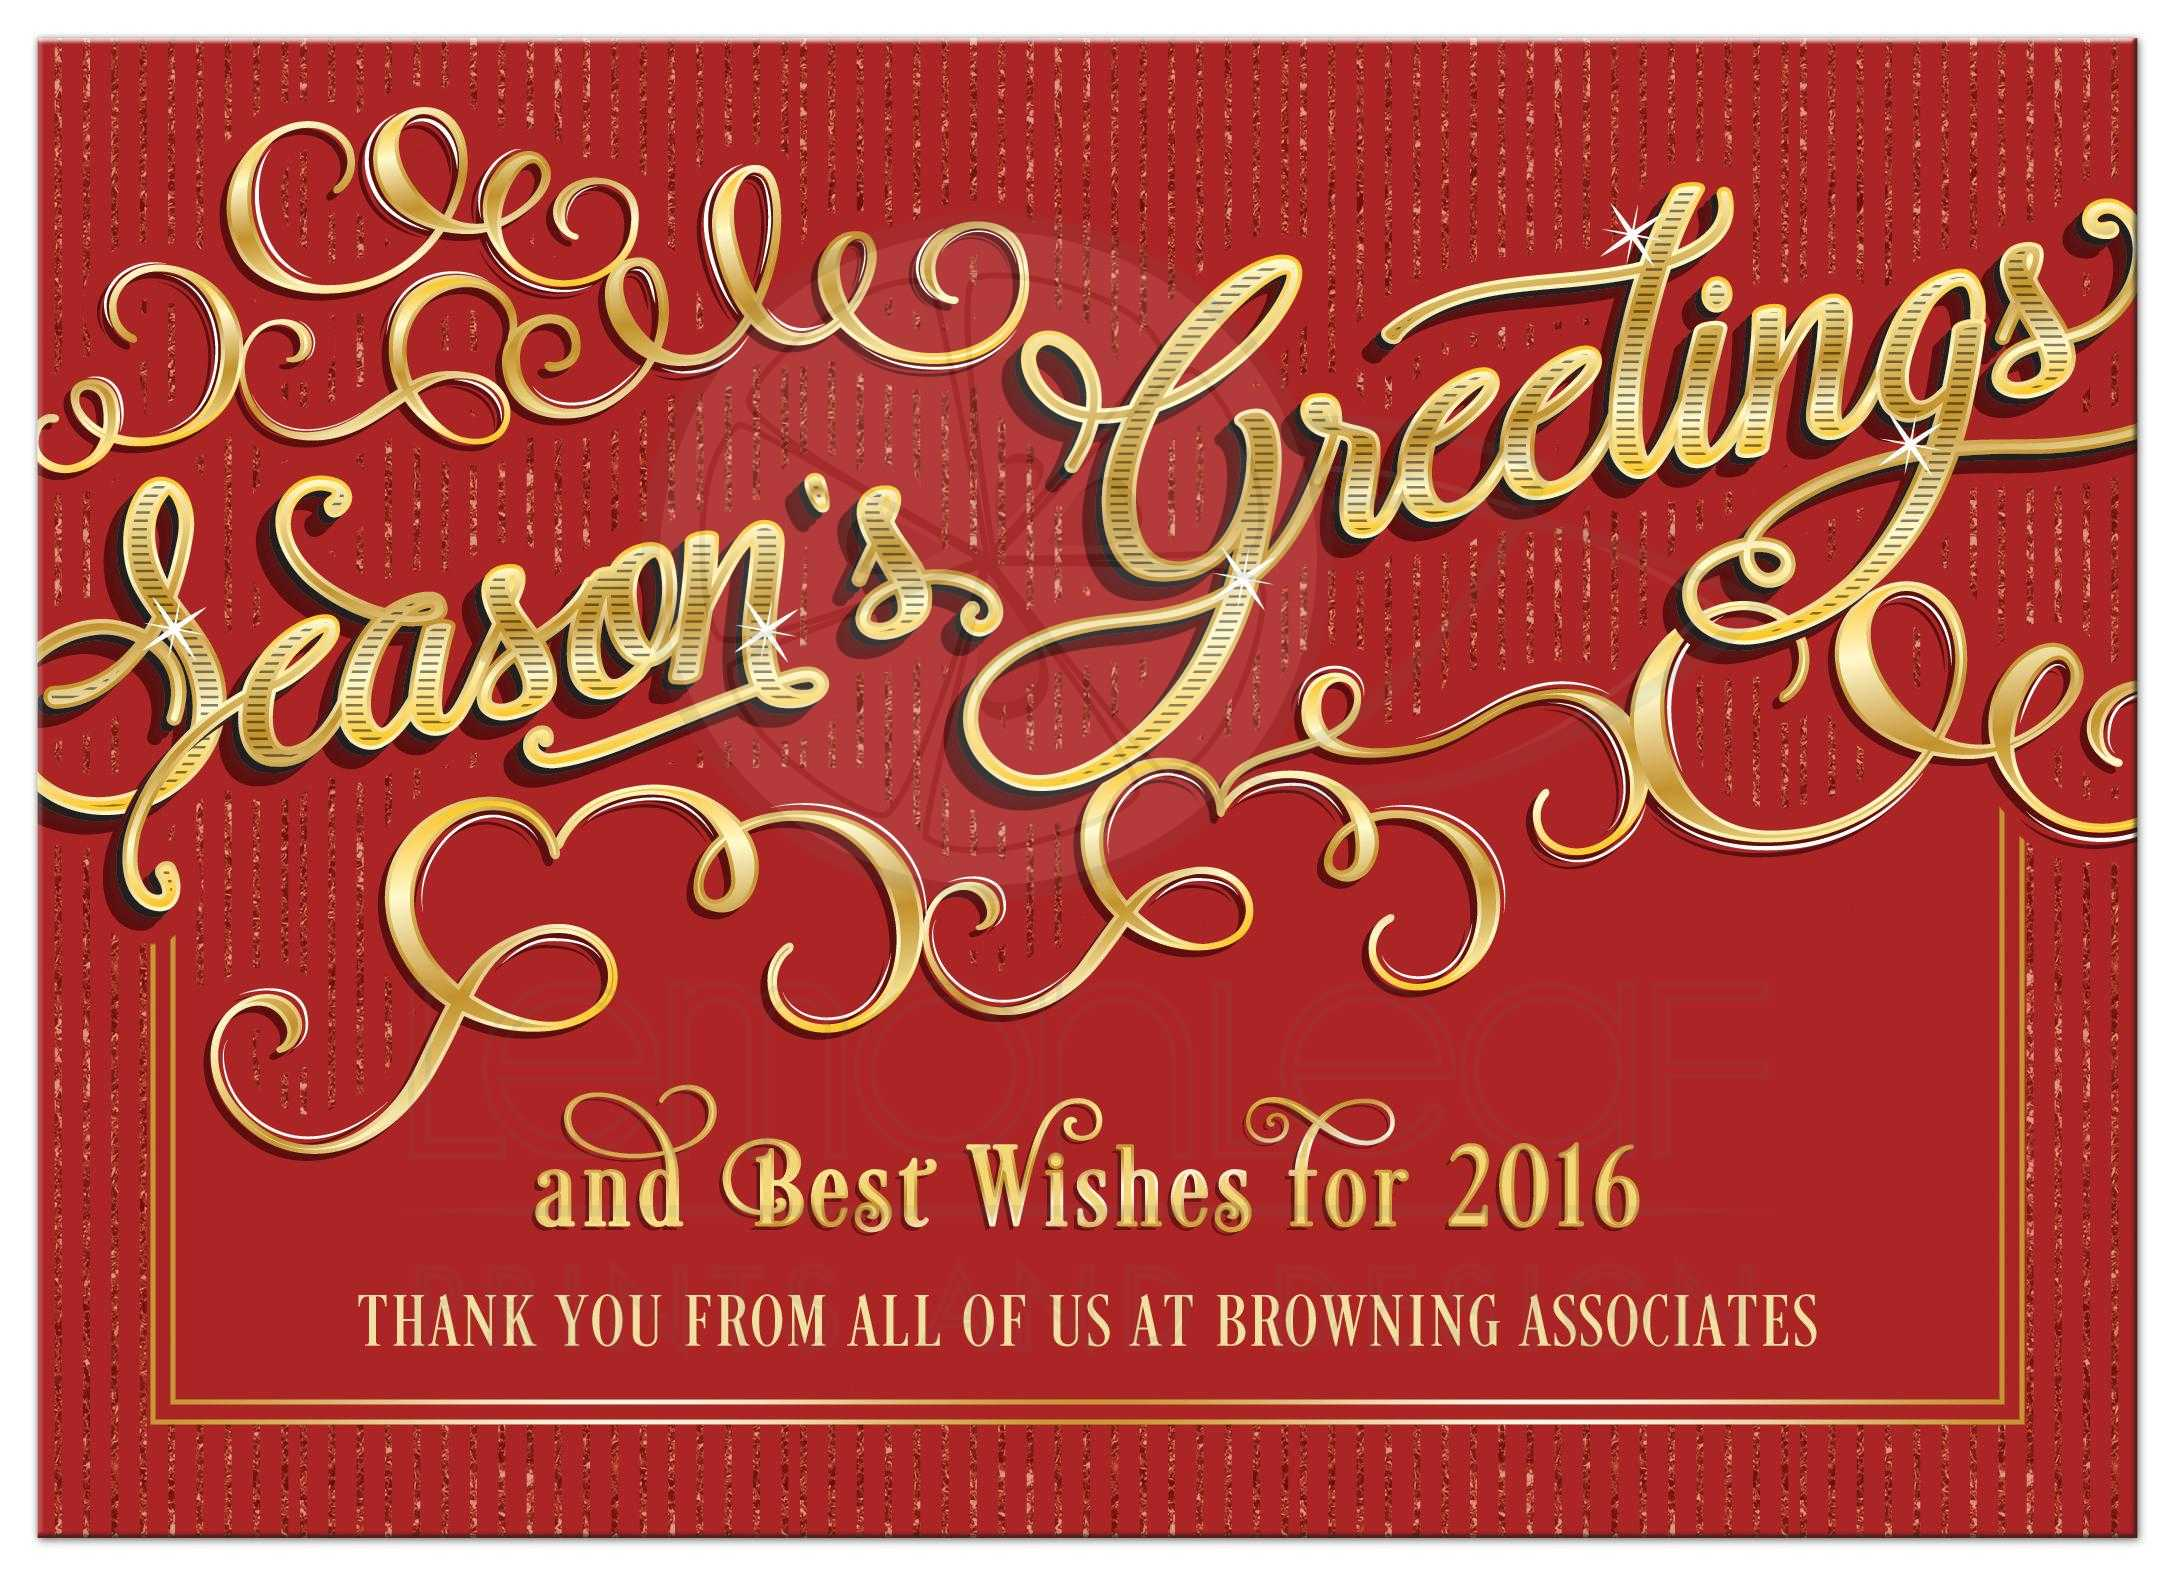 Business Holiday Card Elegant Seasons Greetings Red Gold